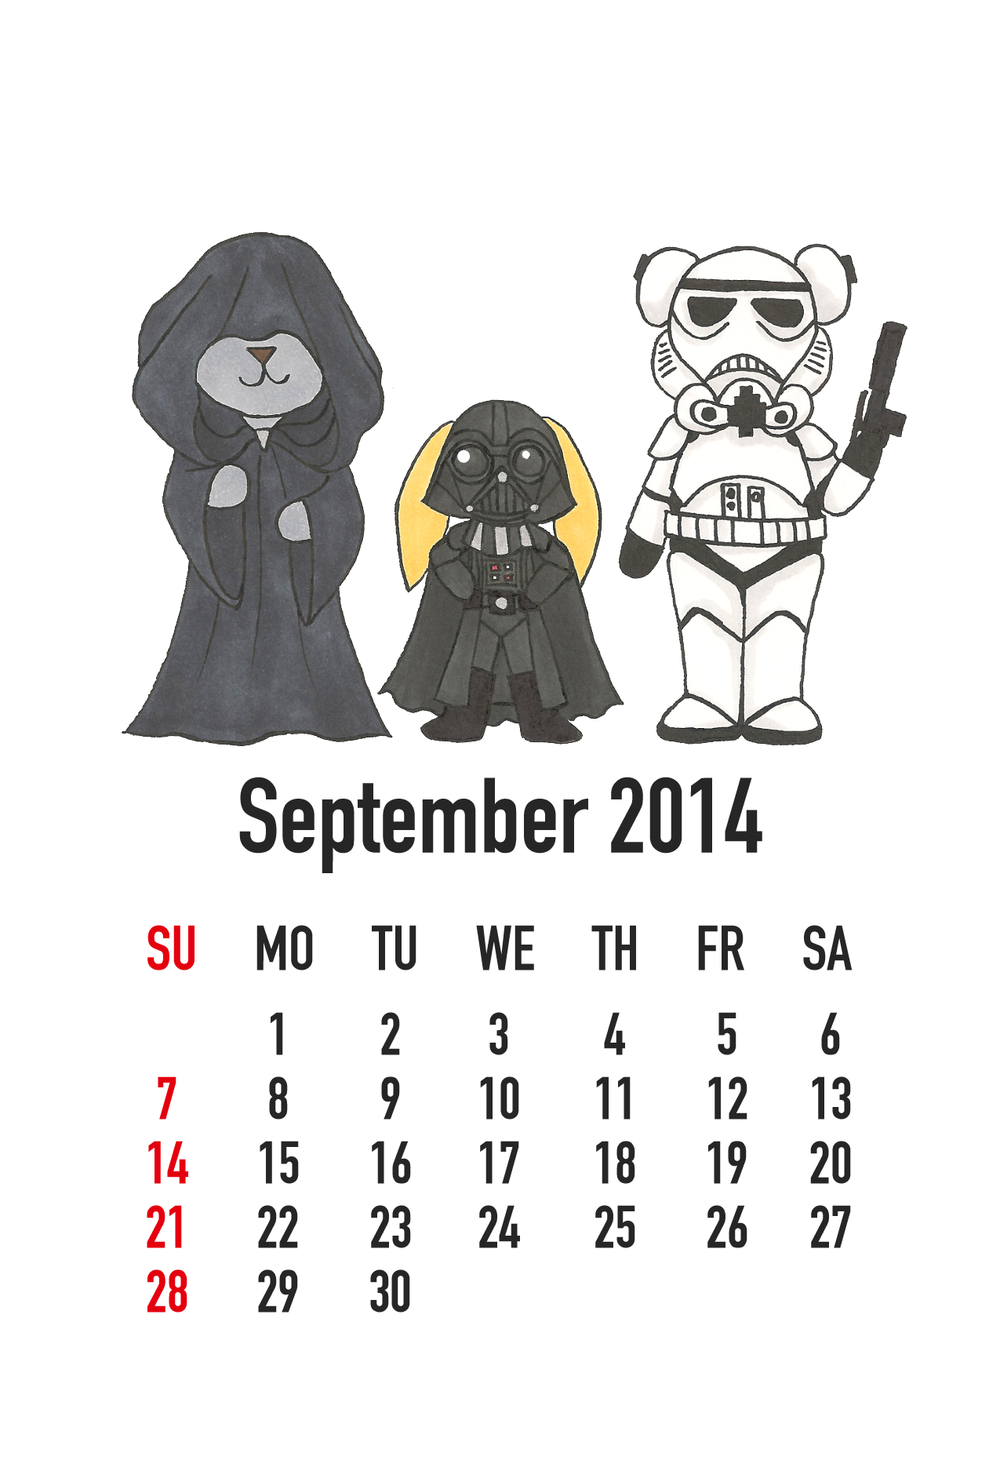 September 2014: Star Wars